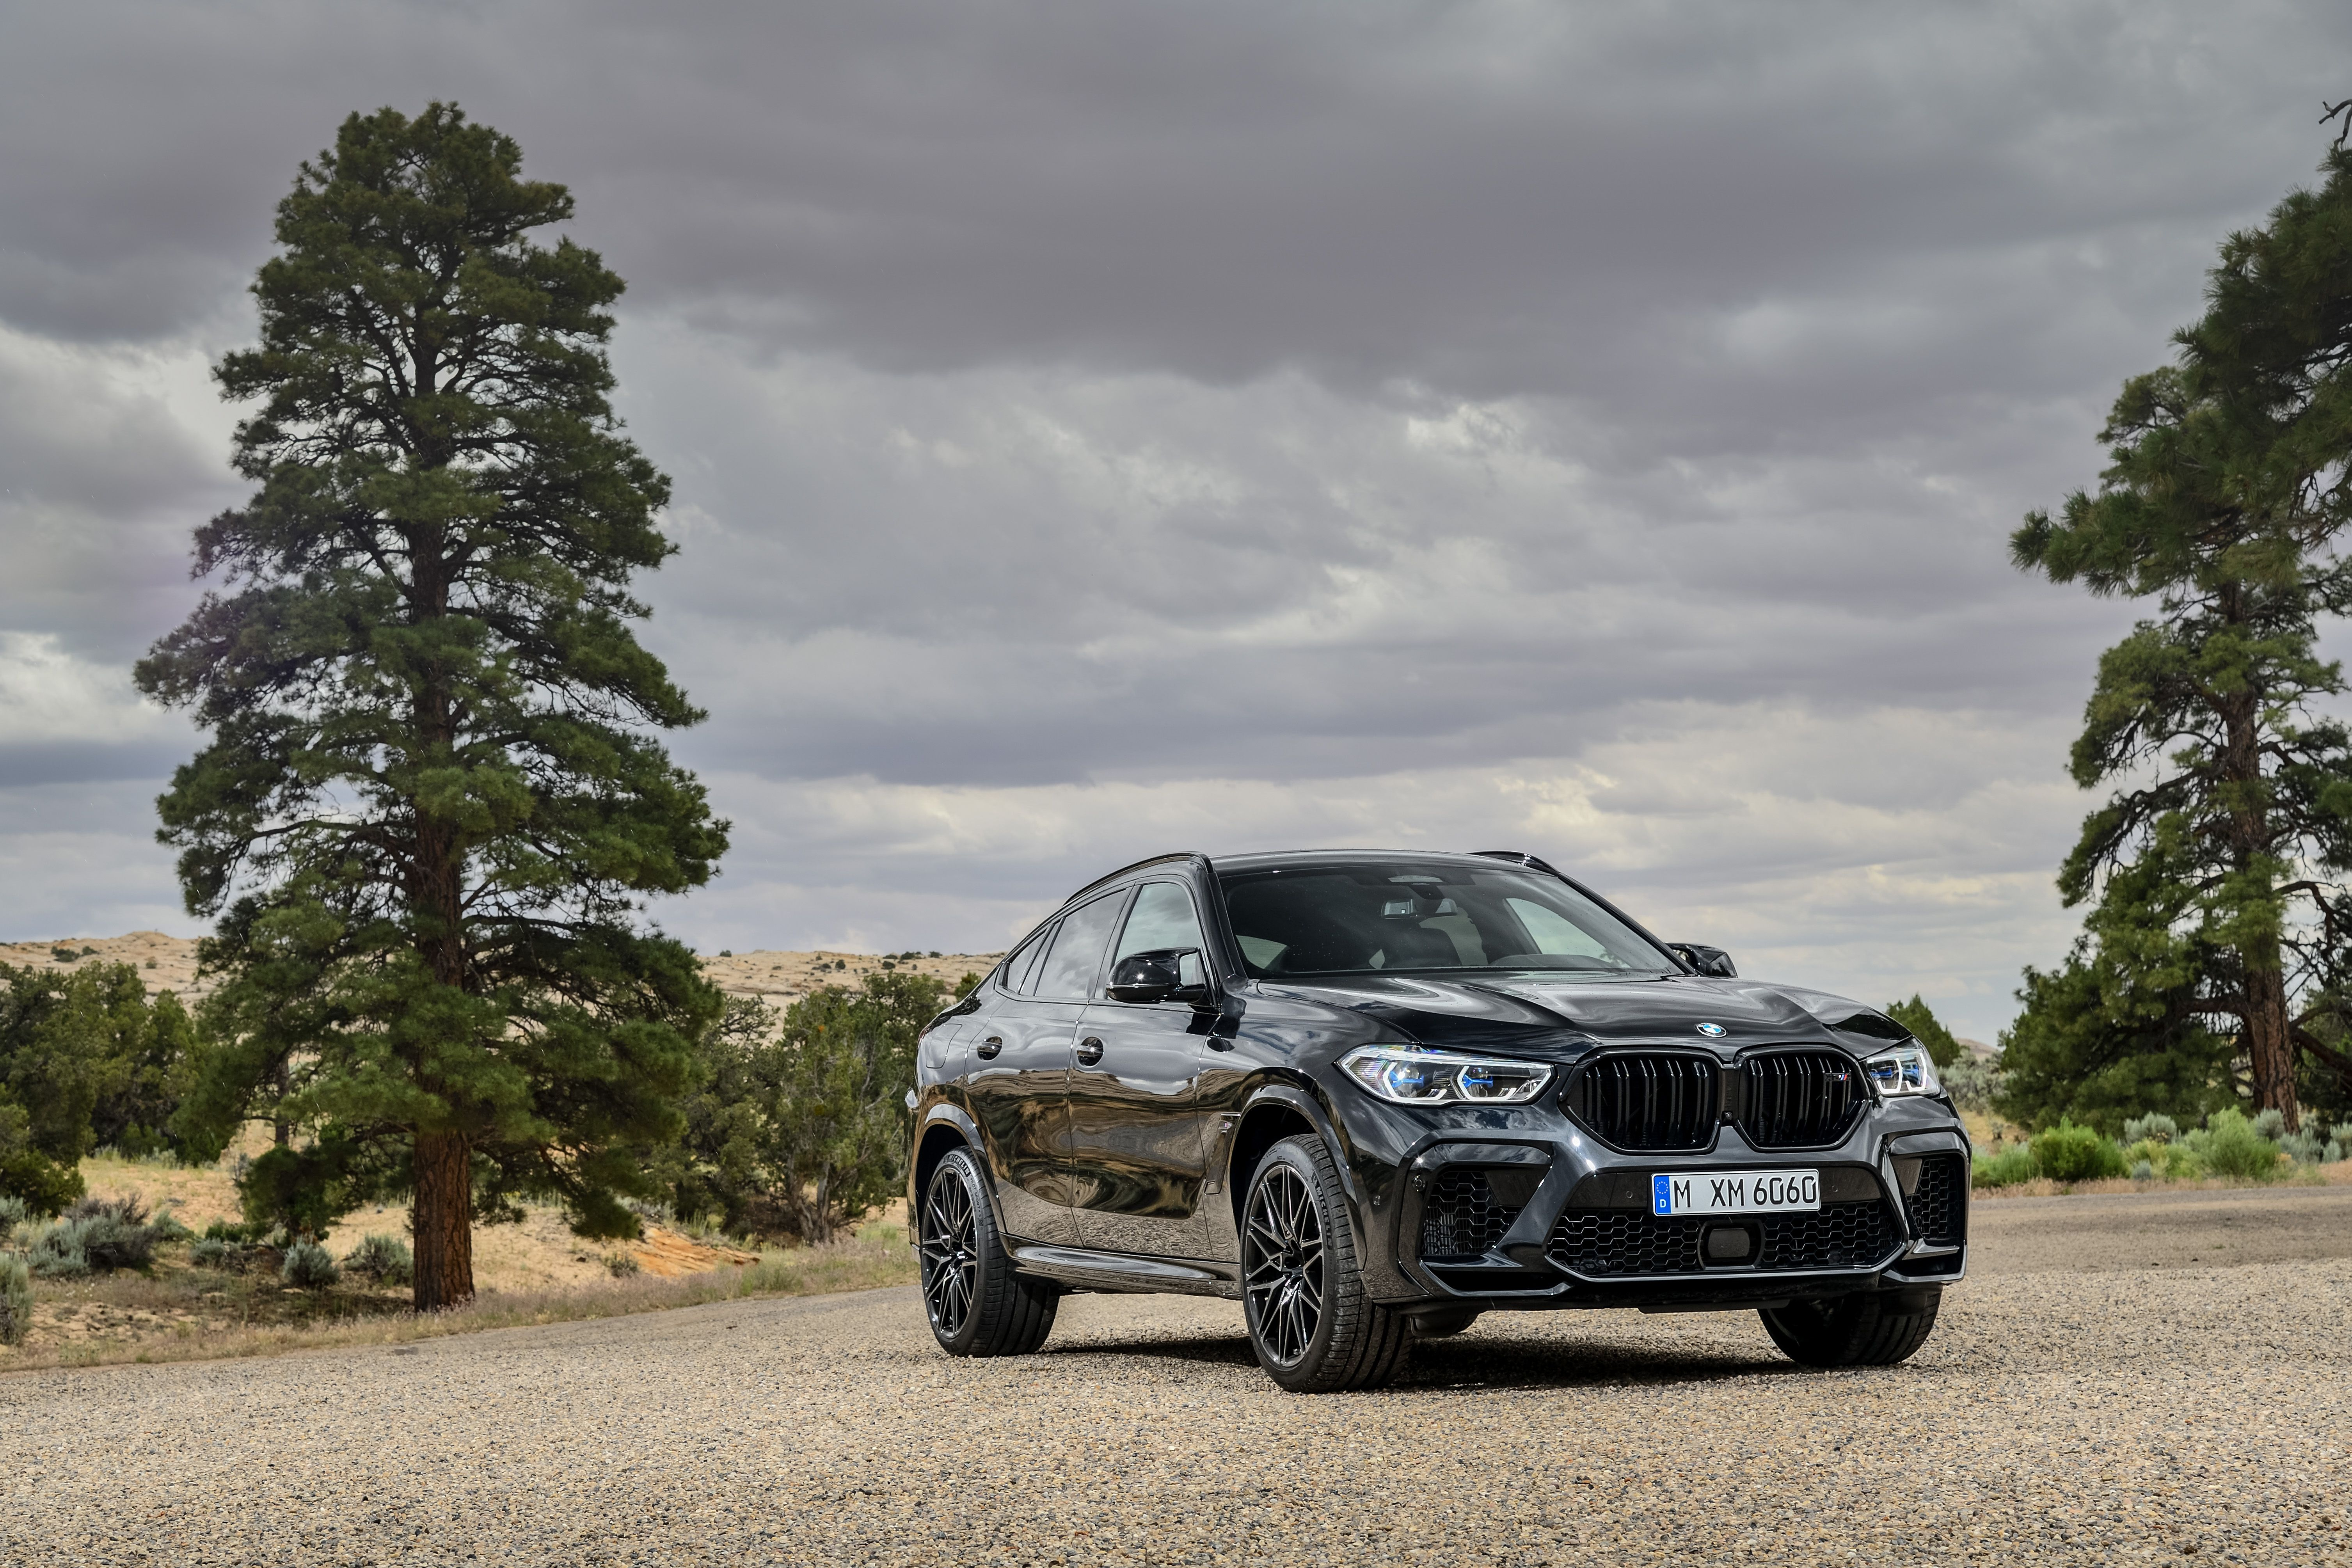 2020 Bmw X6 M Review Pricing And Specs